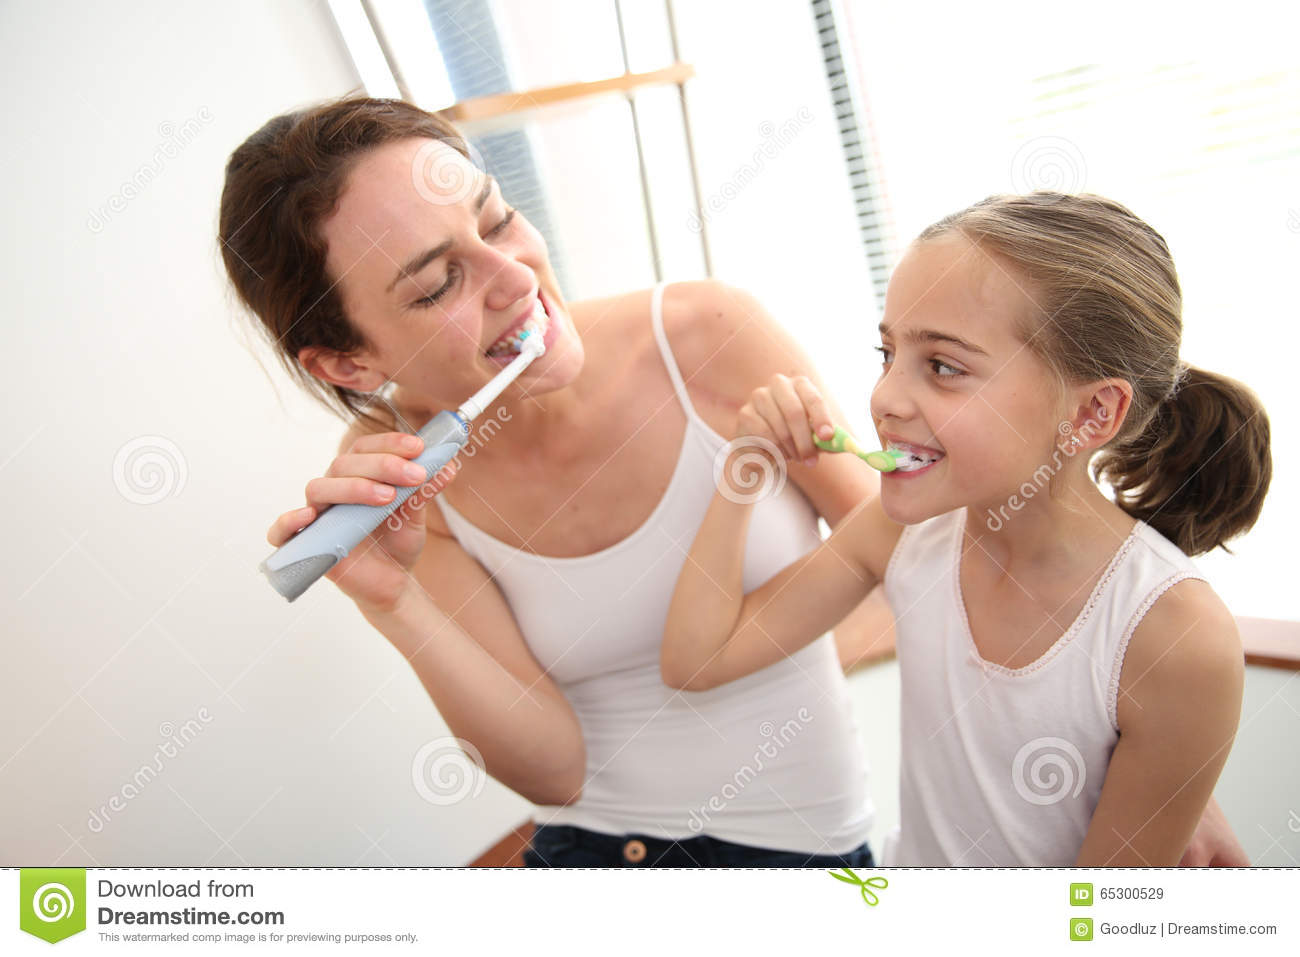 Mother teaching her daughter how to brush teeth